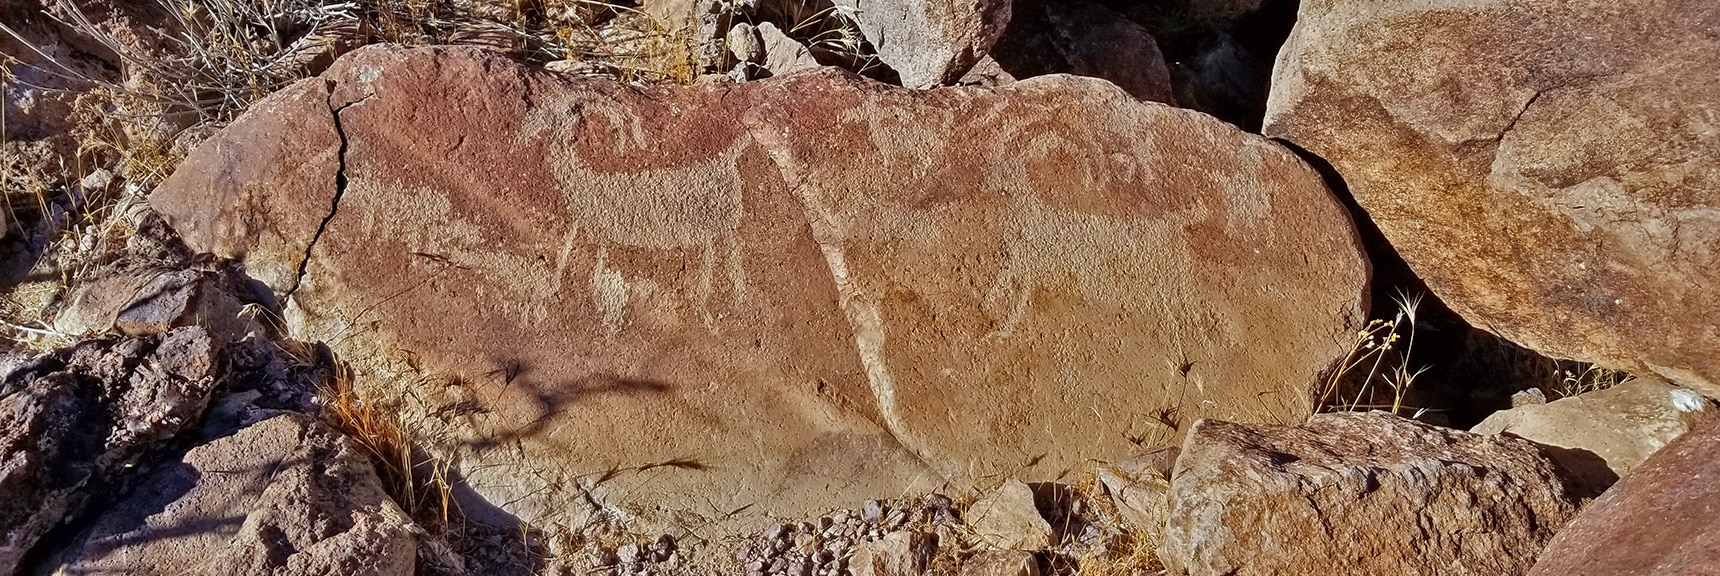 Now the Petroglyphs Appear! | Petroglyph Canyon | Sloan Canyon National Conservation Area, Nevada